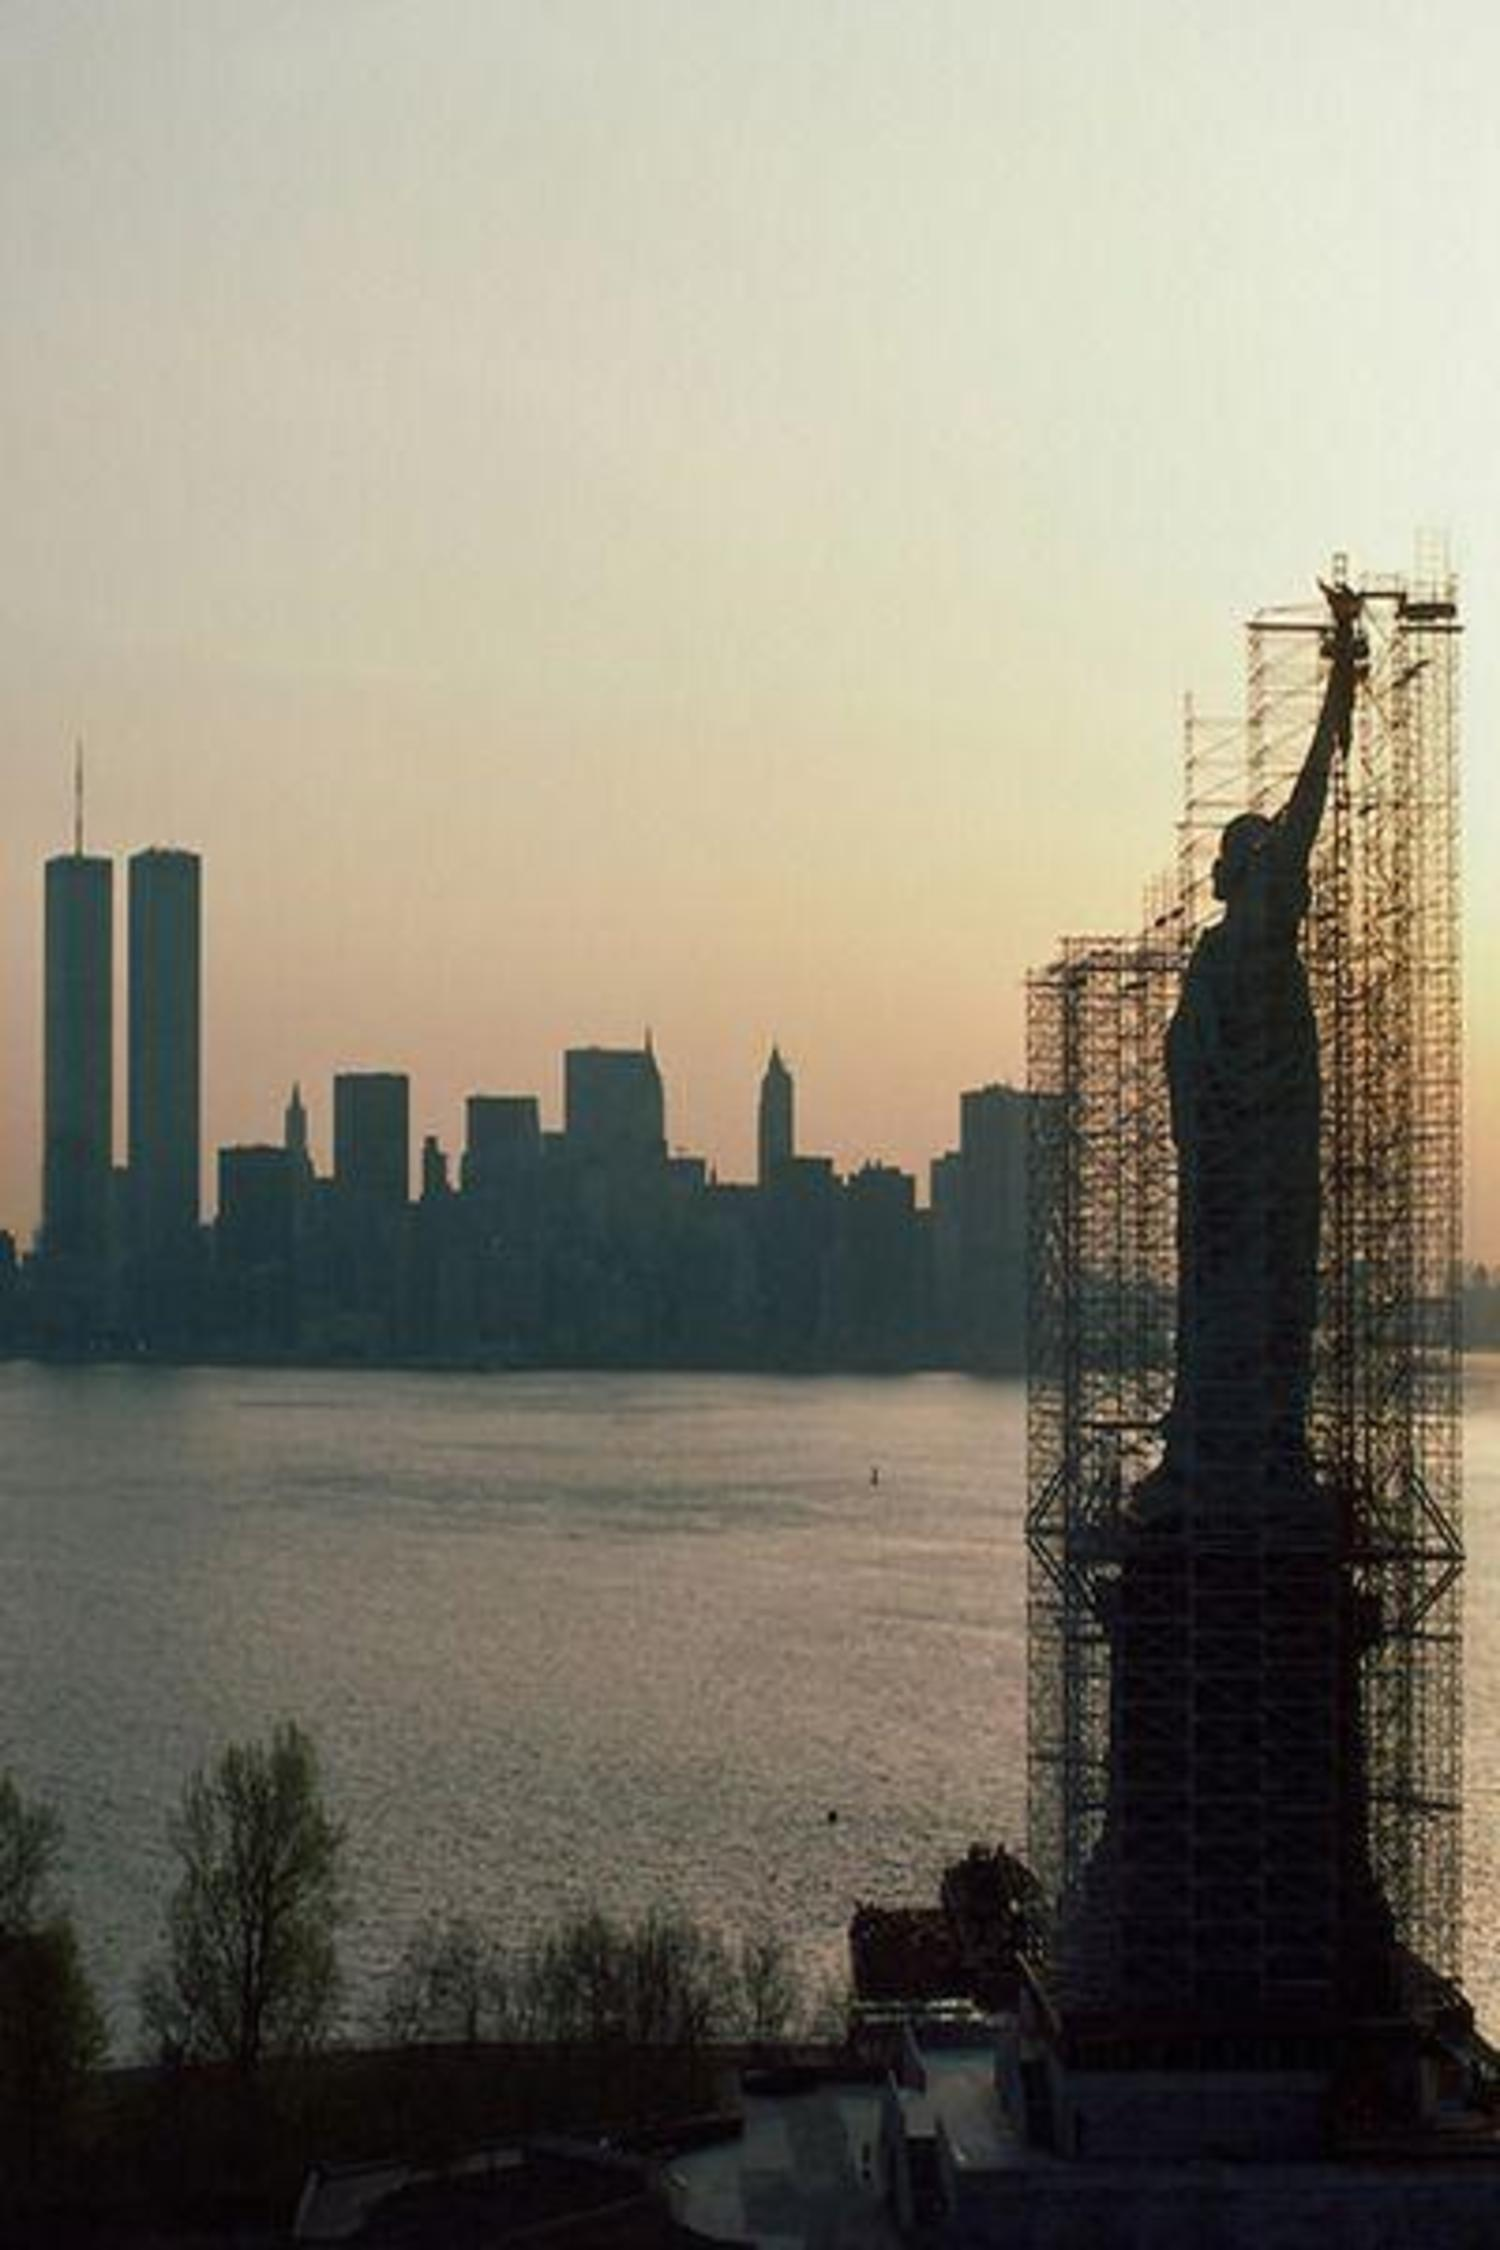 Statue of Liberty undergoing renovations and repairs in the mid 1980s